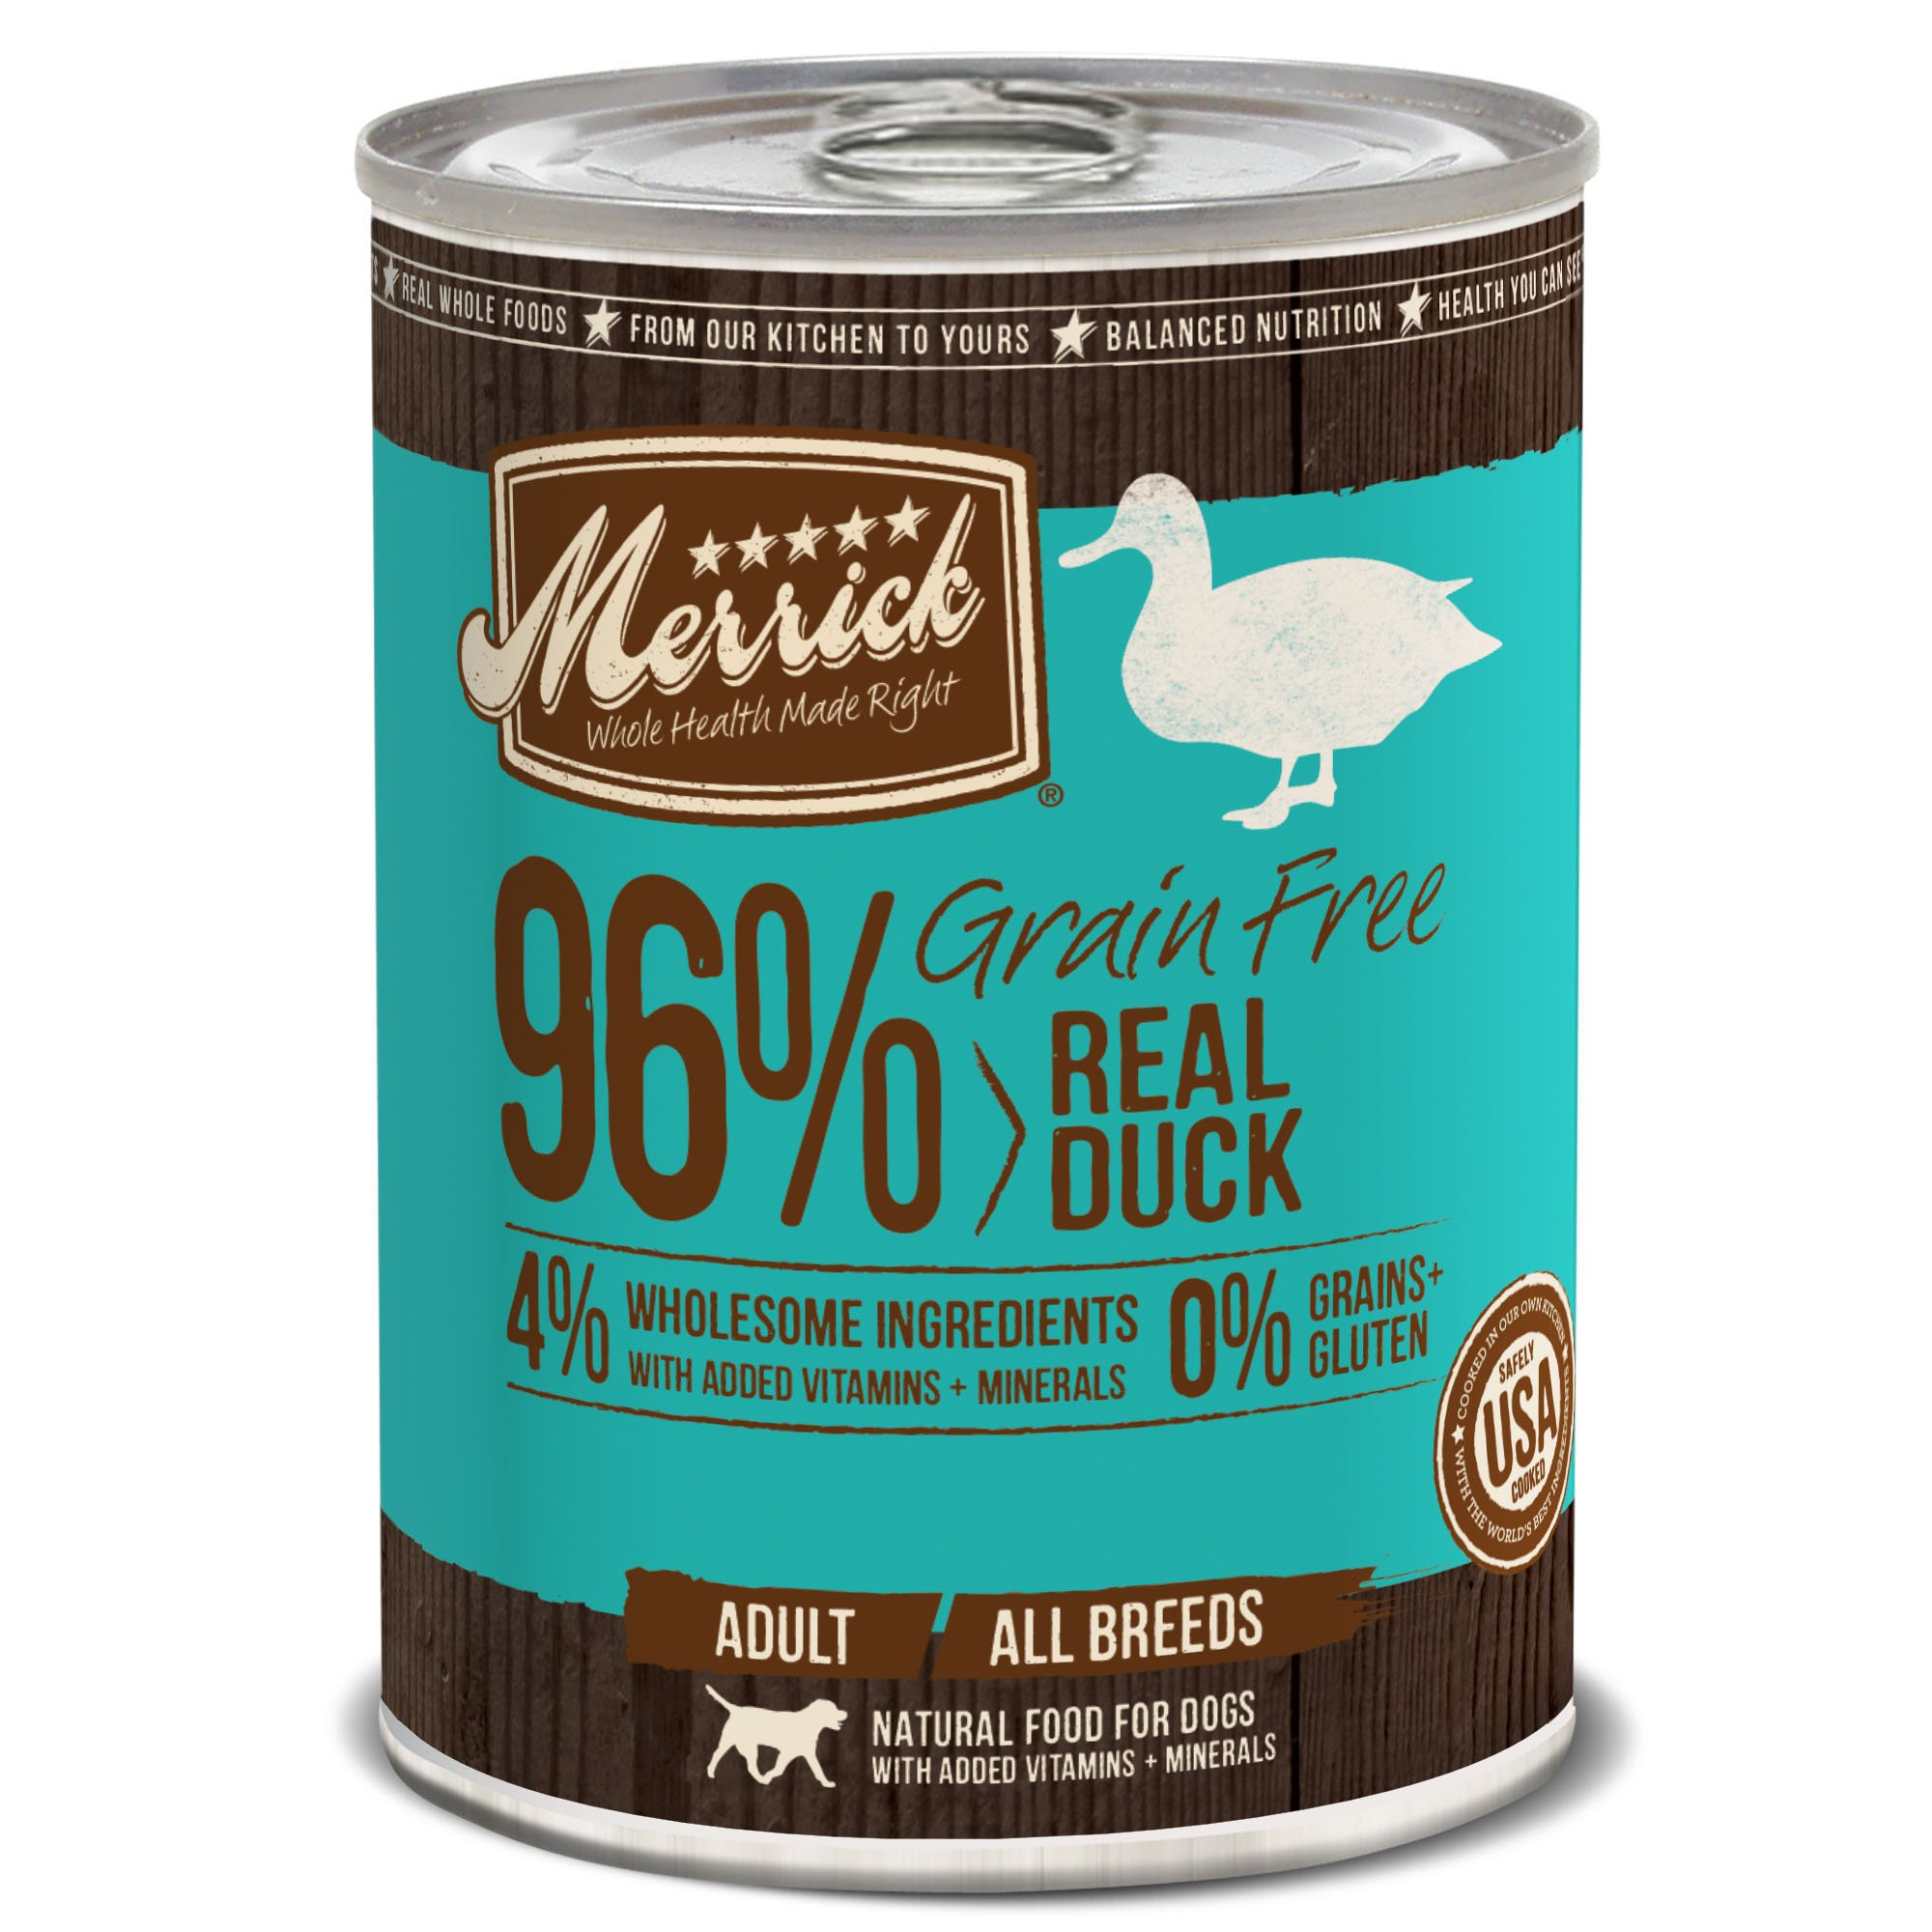 Merrick Grain Free 13.2-Ounce Real Duck Dog Food, 12 Count Case by Merrick (Image #1)